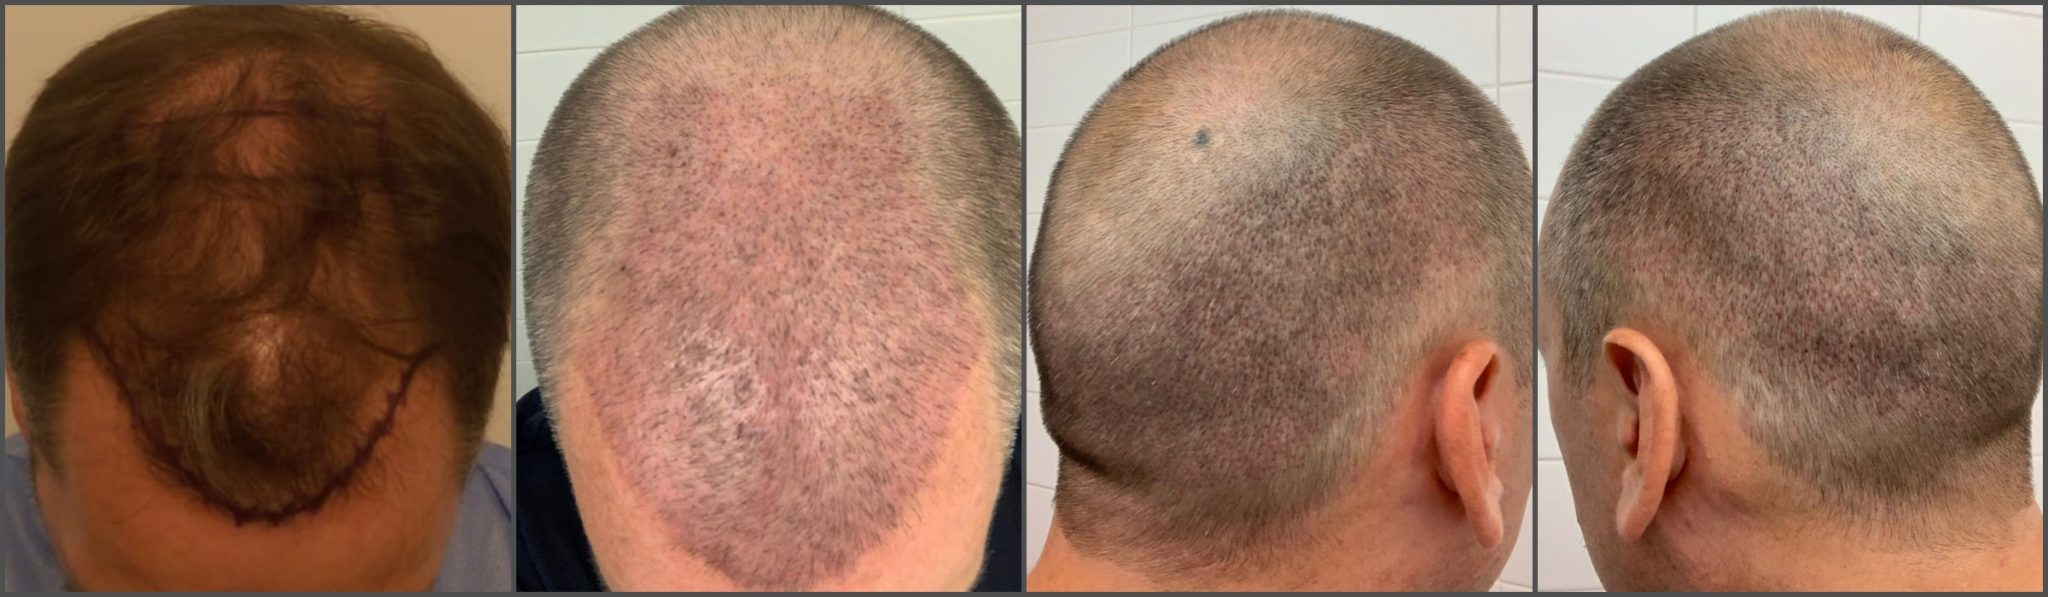 Hair transplant healing post-op